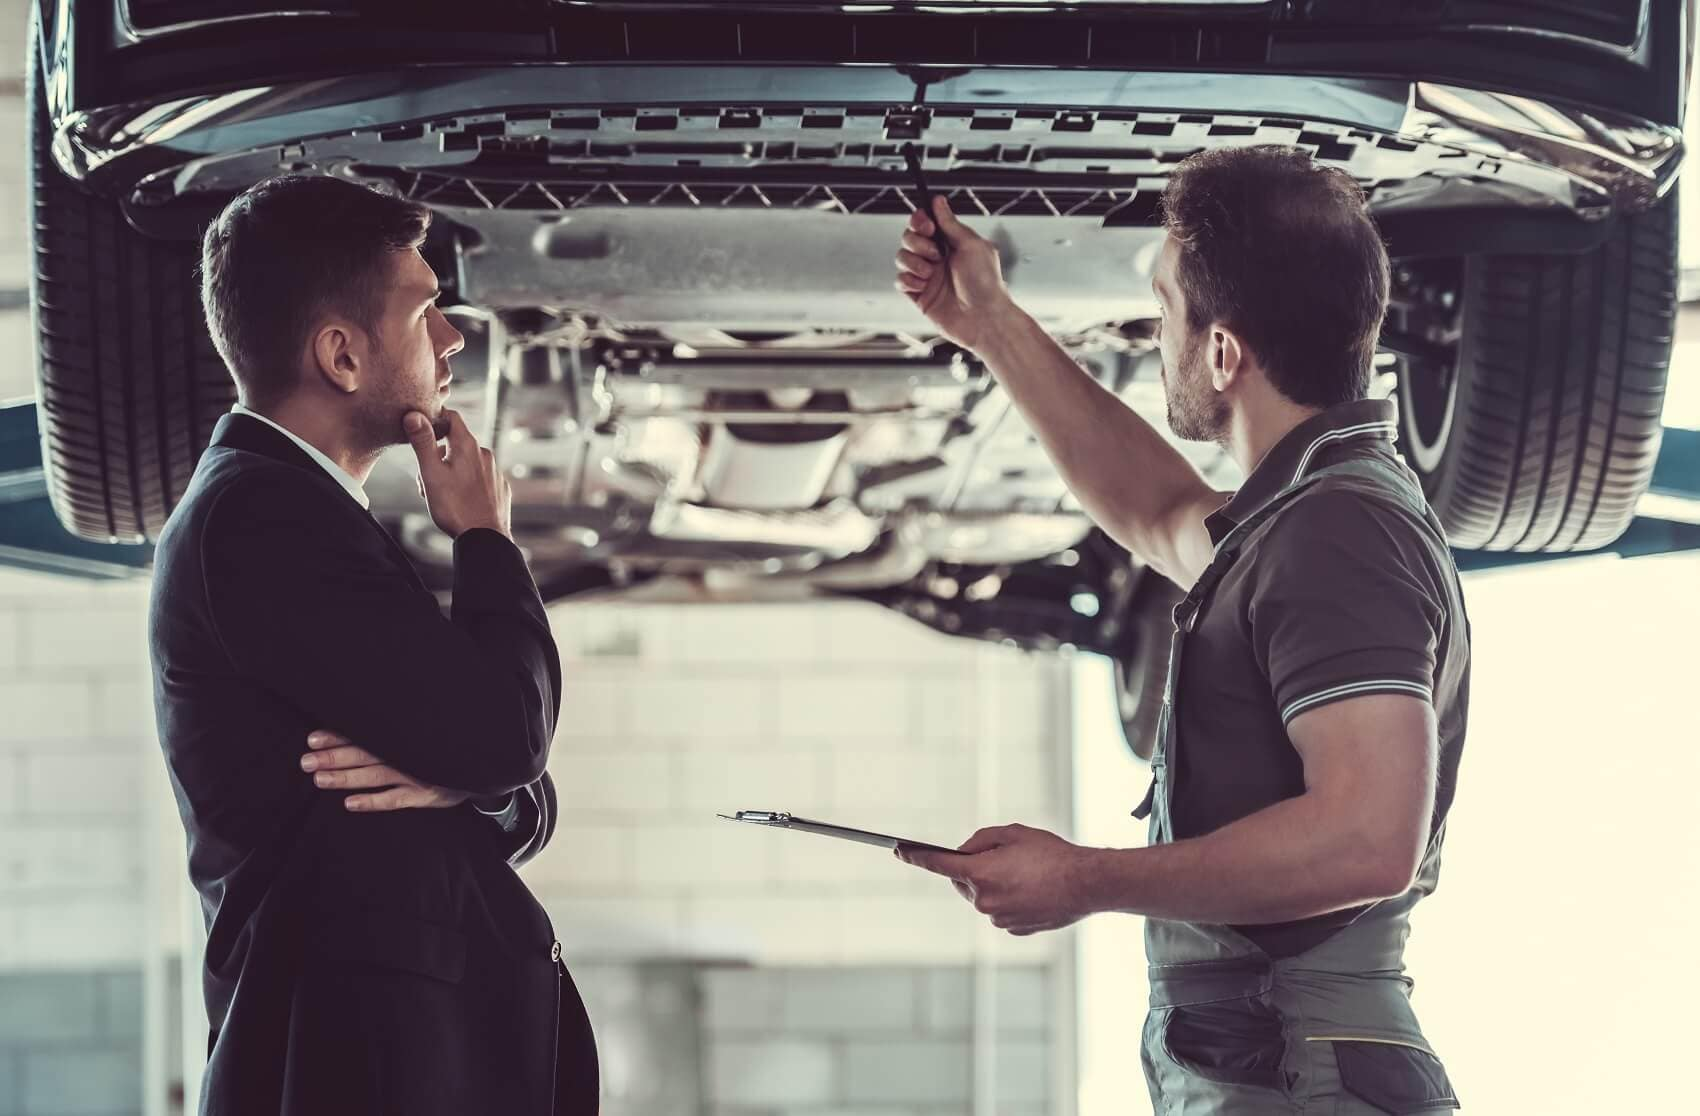 VISIT OUR CHEVY SERVICE CENTER